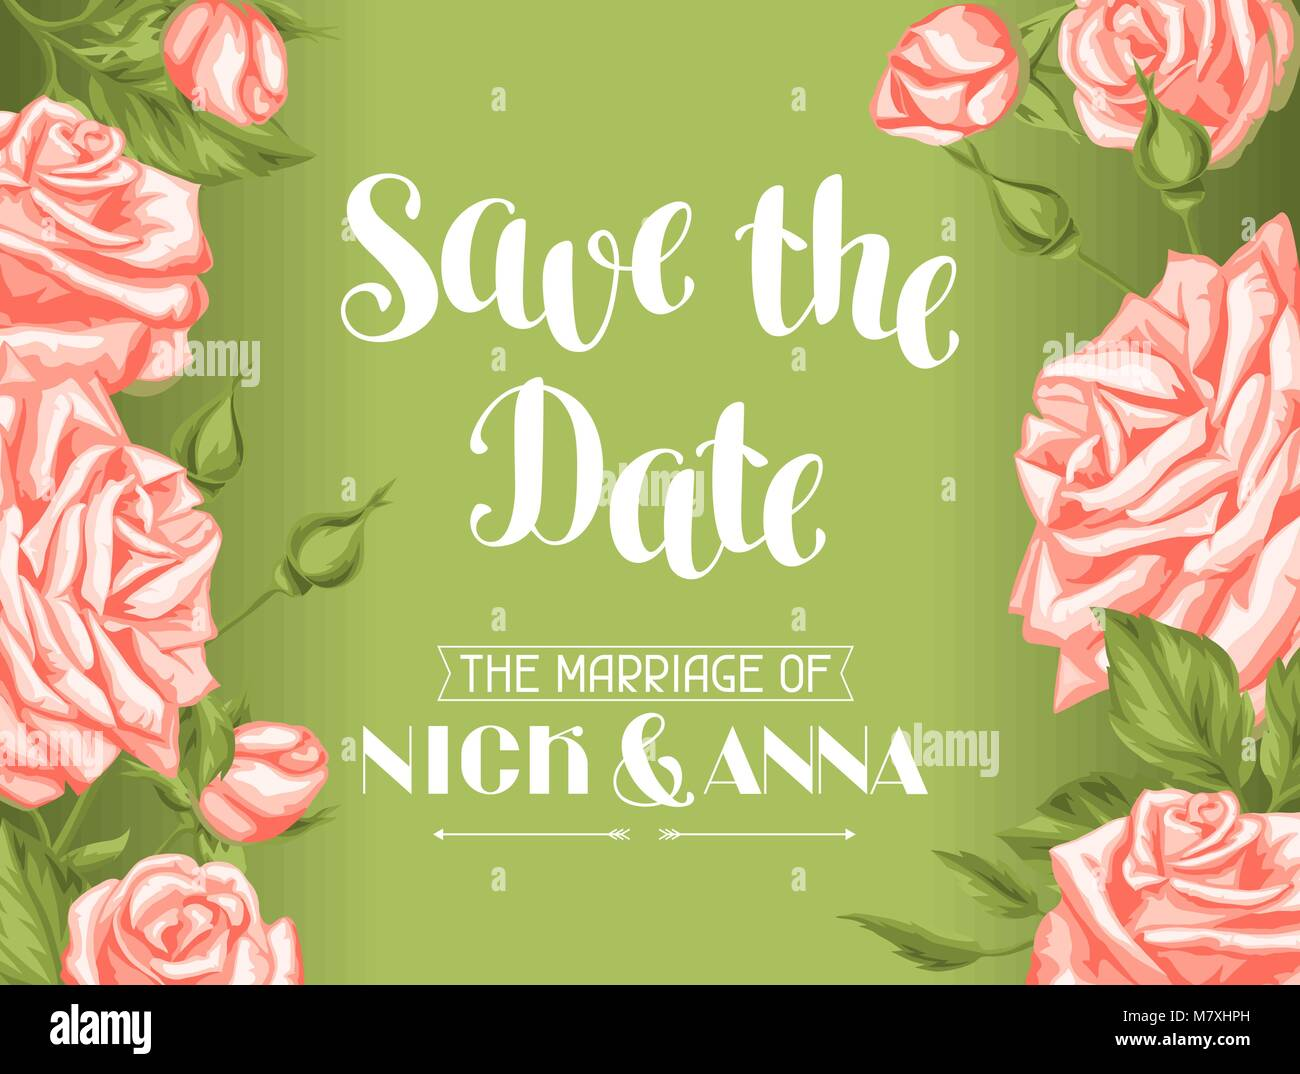 9a3c328938a Wedding invitation card template with roses. Calligraphic text and vintage  flowers - Stock Vector